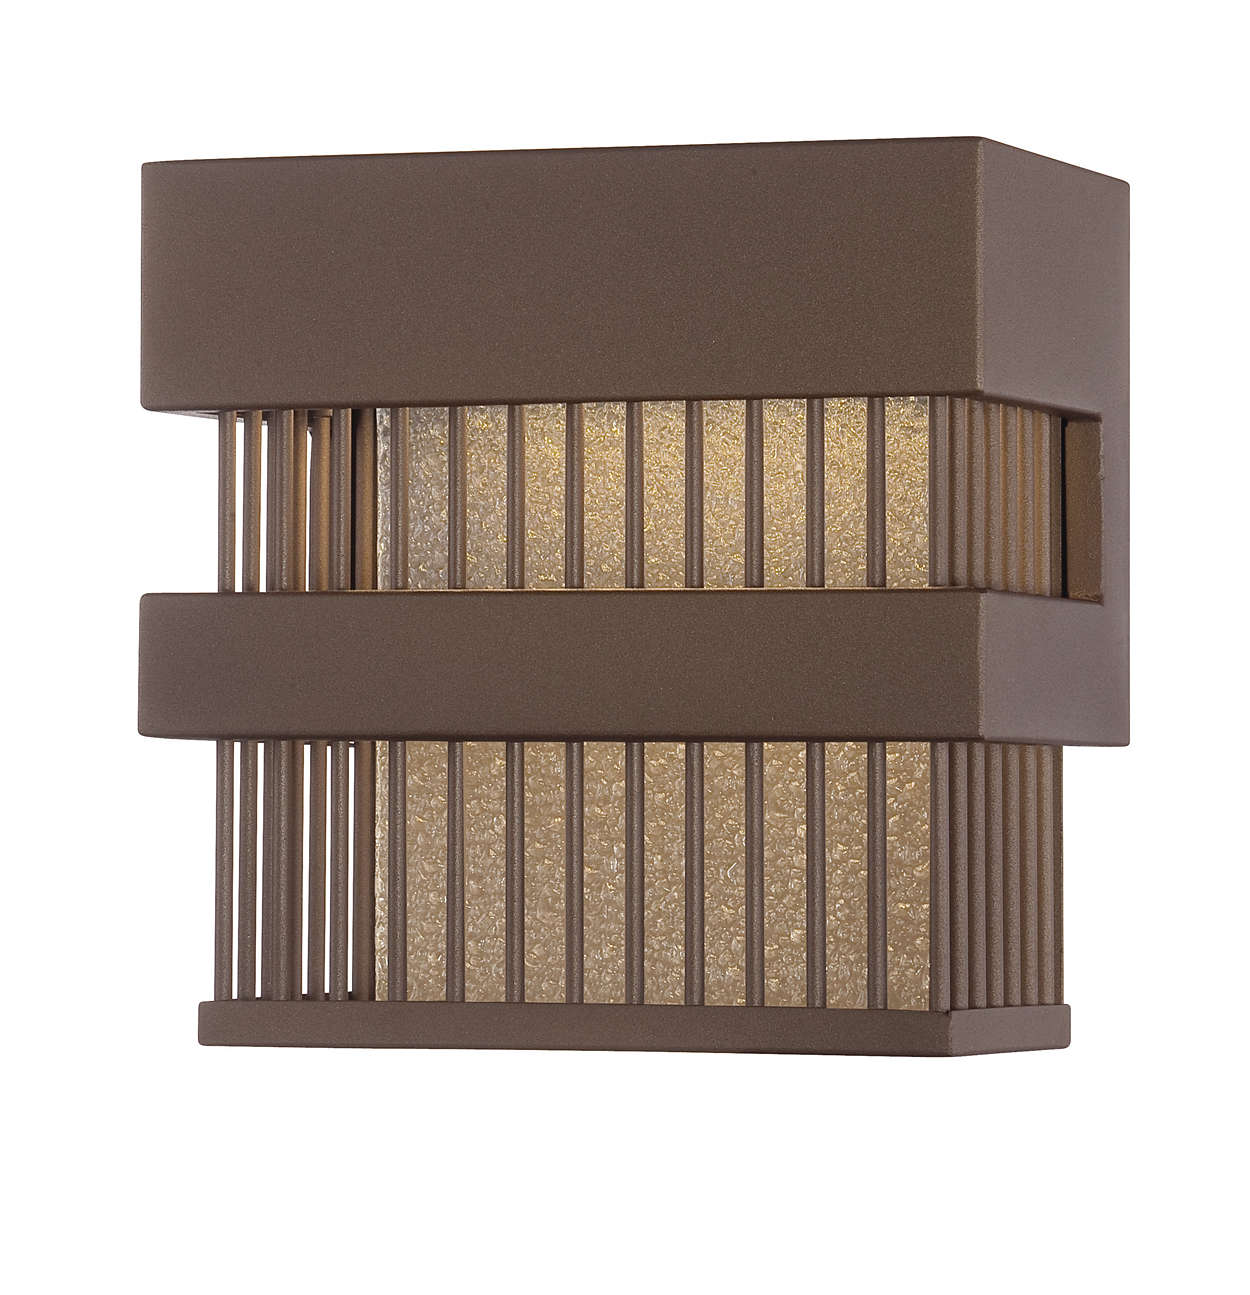 Corydon LED outdoor wall lantern, Bronze finish